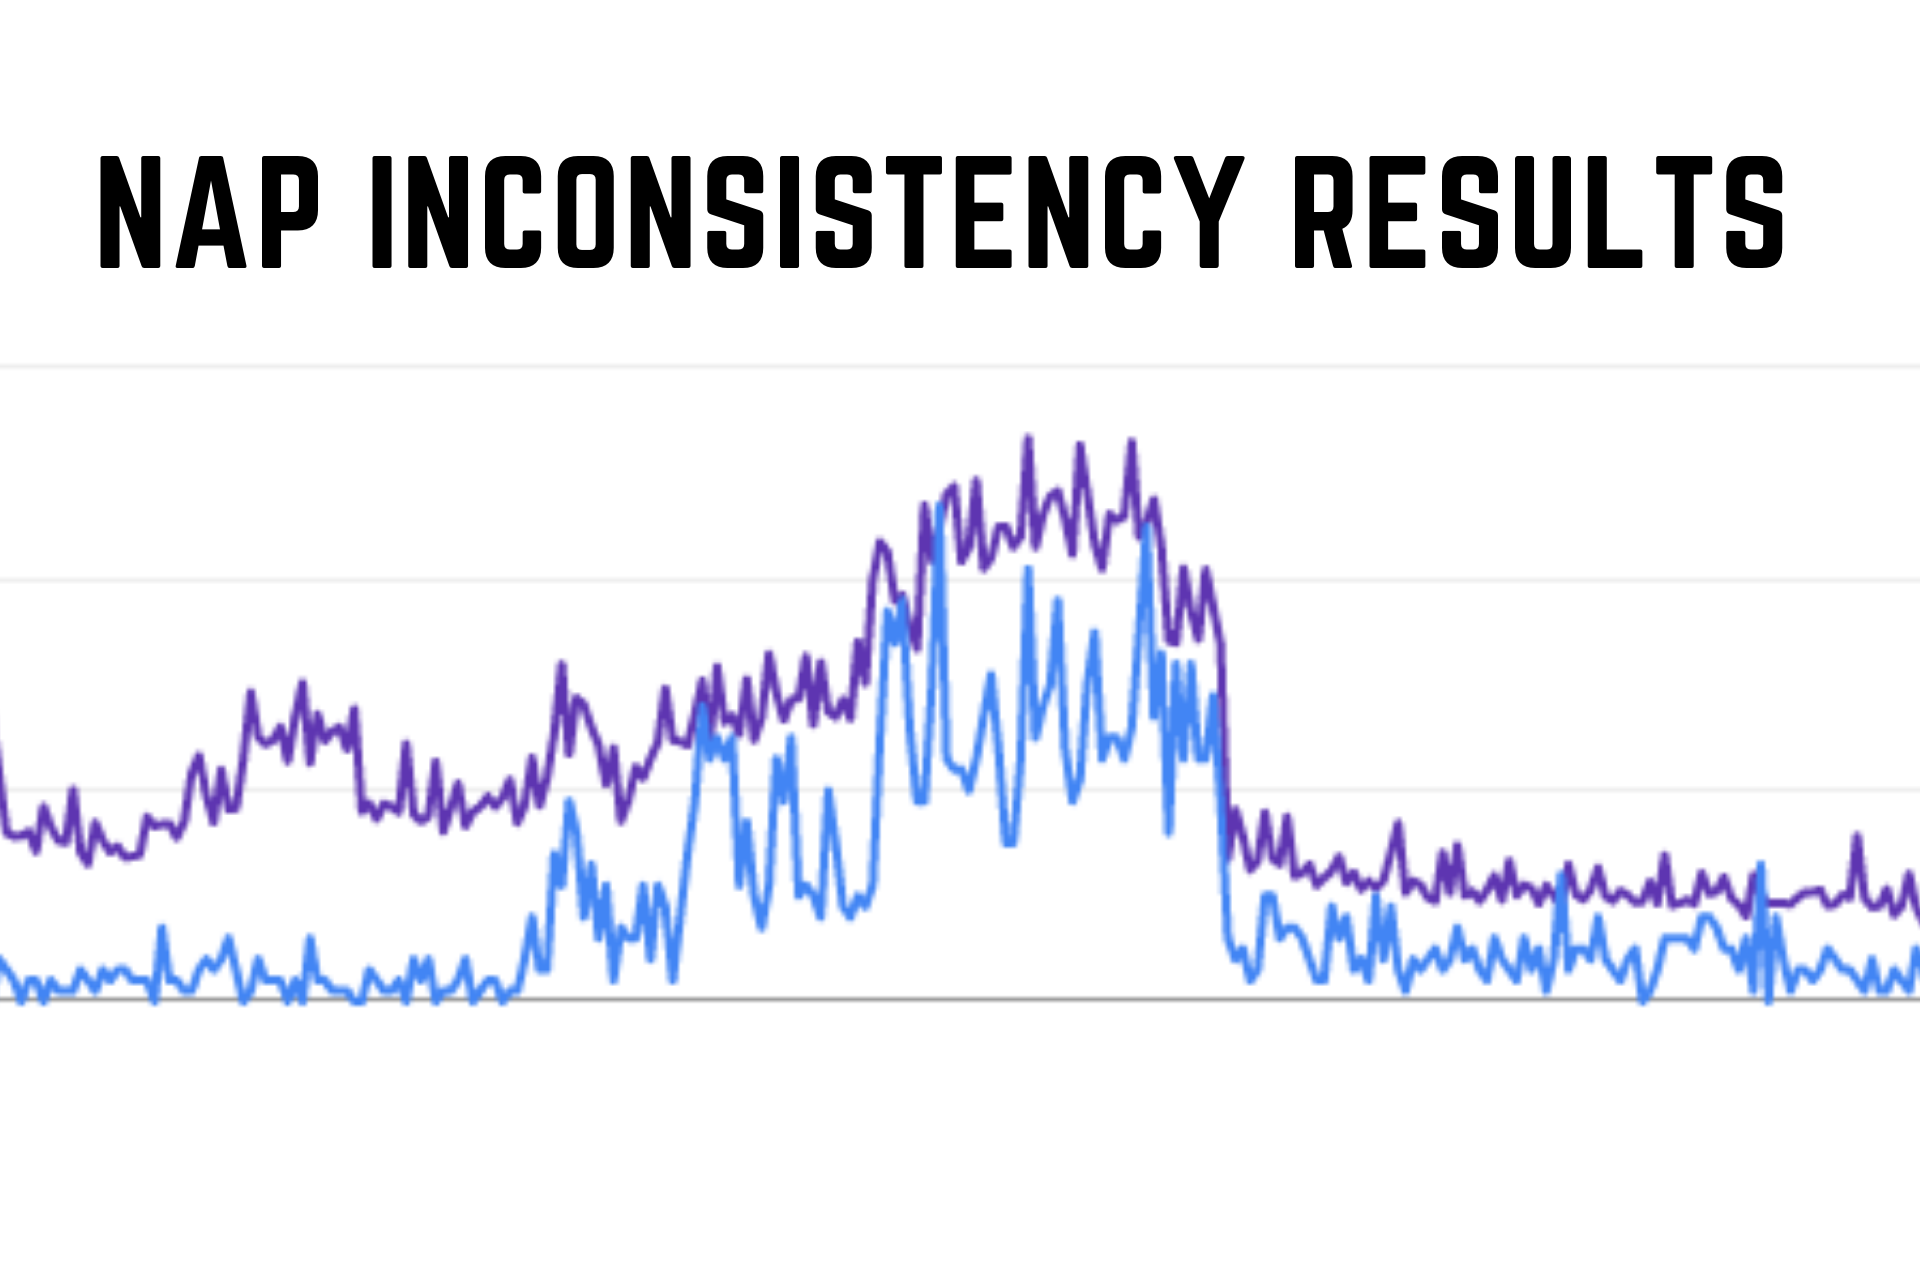 Graph showing a decline in traffic due to NAP inconsistency.